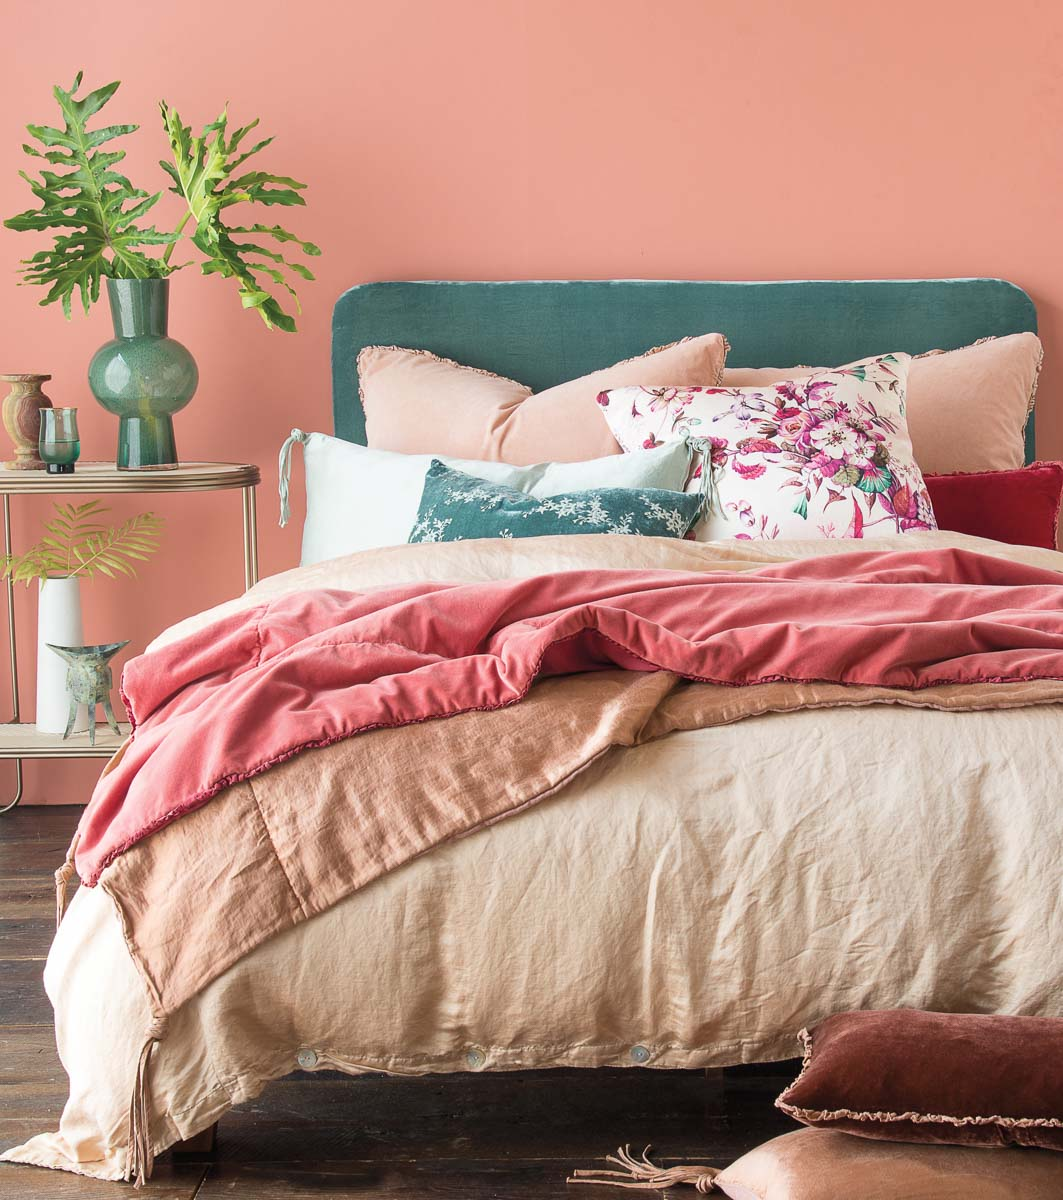 Bed with green headboard and pink and neutral linens